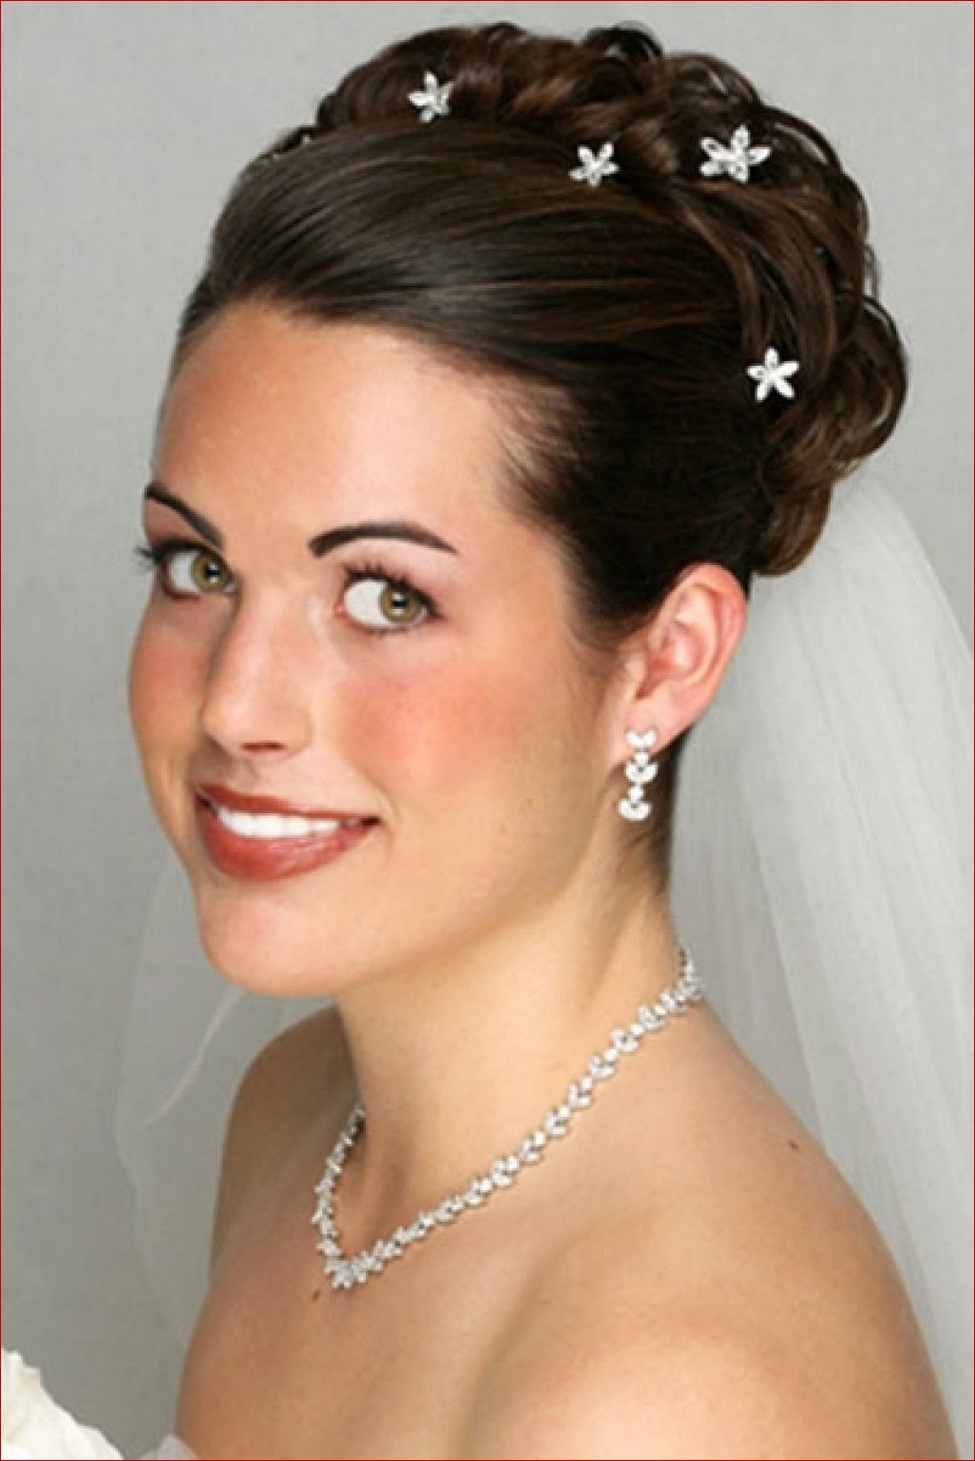 Best Wedding Hair Shoulder Length For Yournstagram Photos Hairstyles With Current Wedding Hairstyles For Mid Length Hair With Fringe (View 9 of 15)